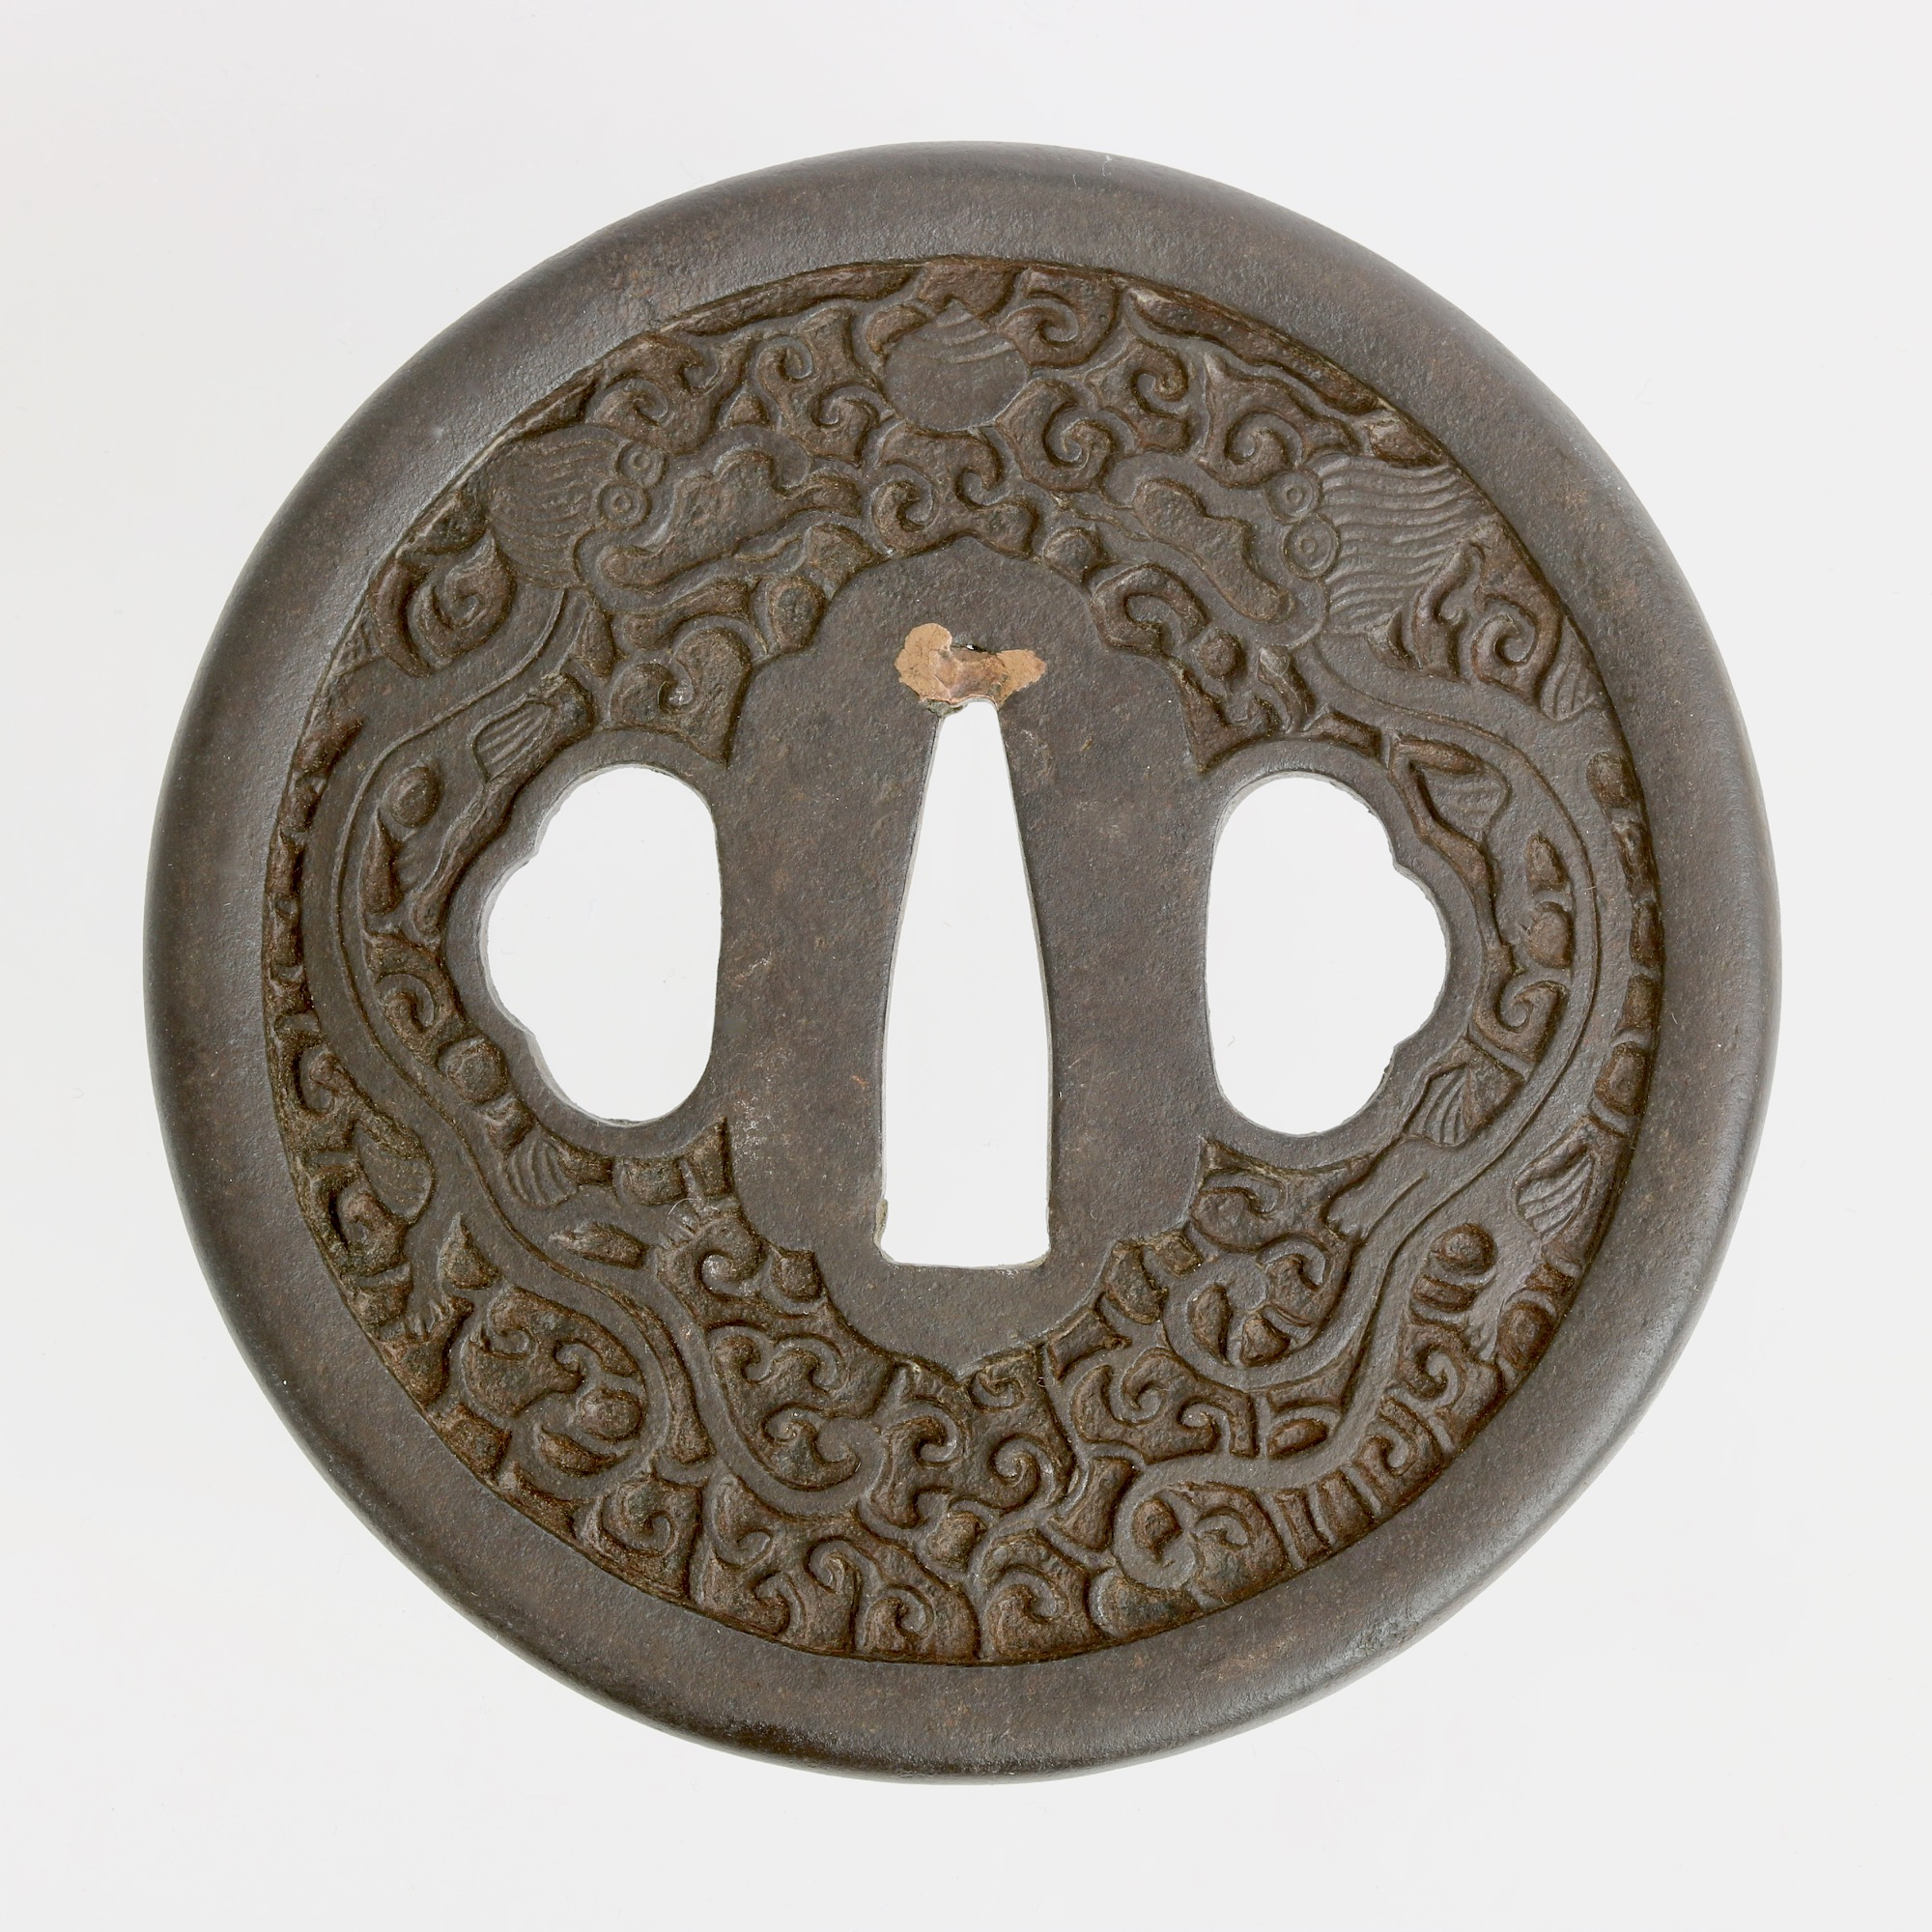 A Japanese sword guard, inspired by Chinese design.